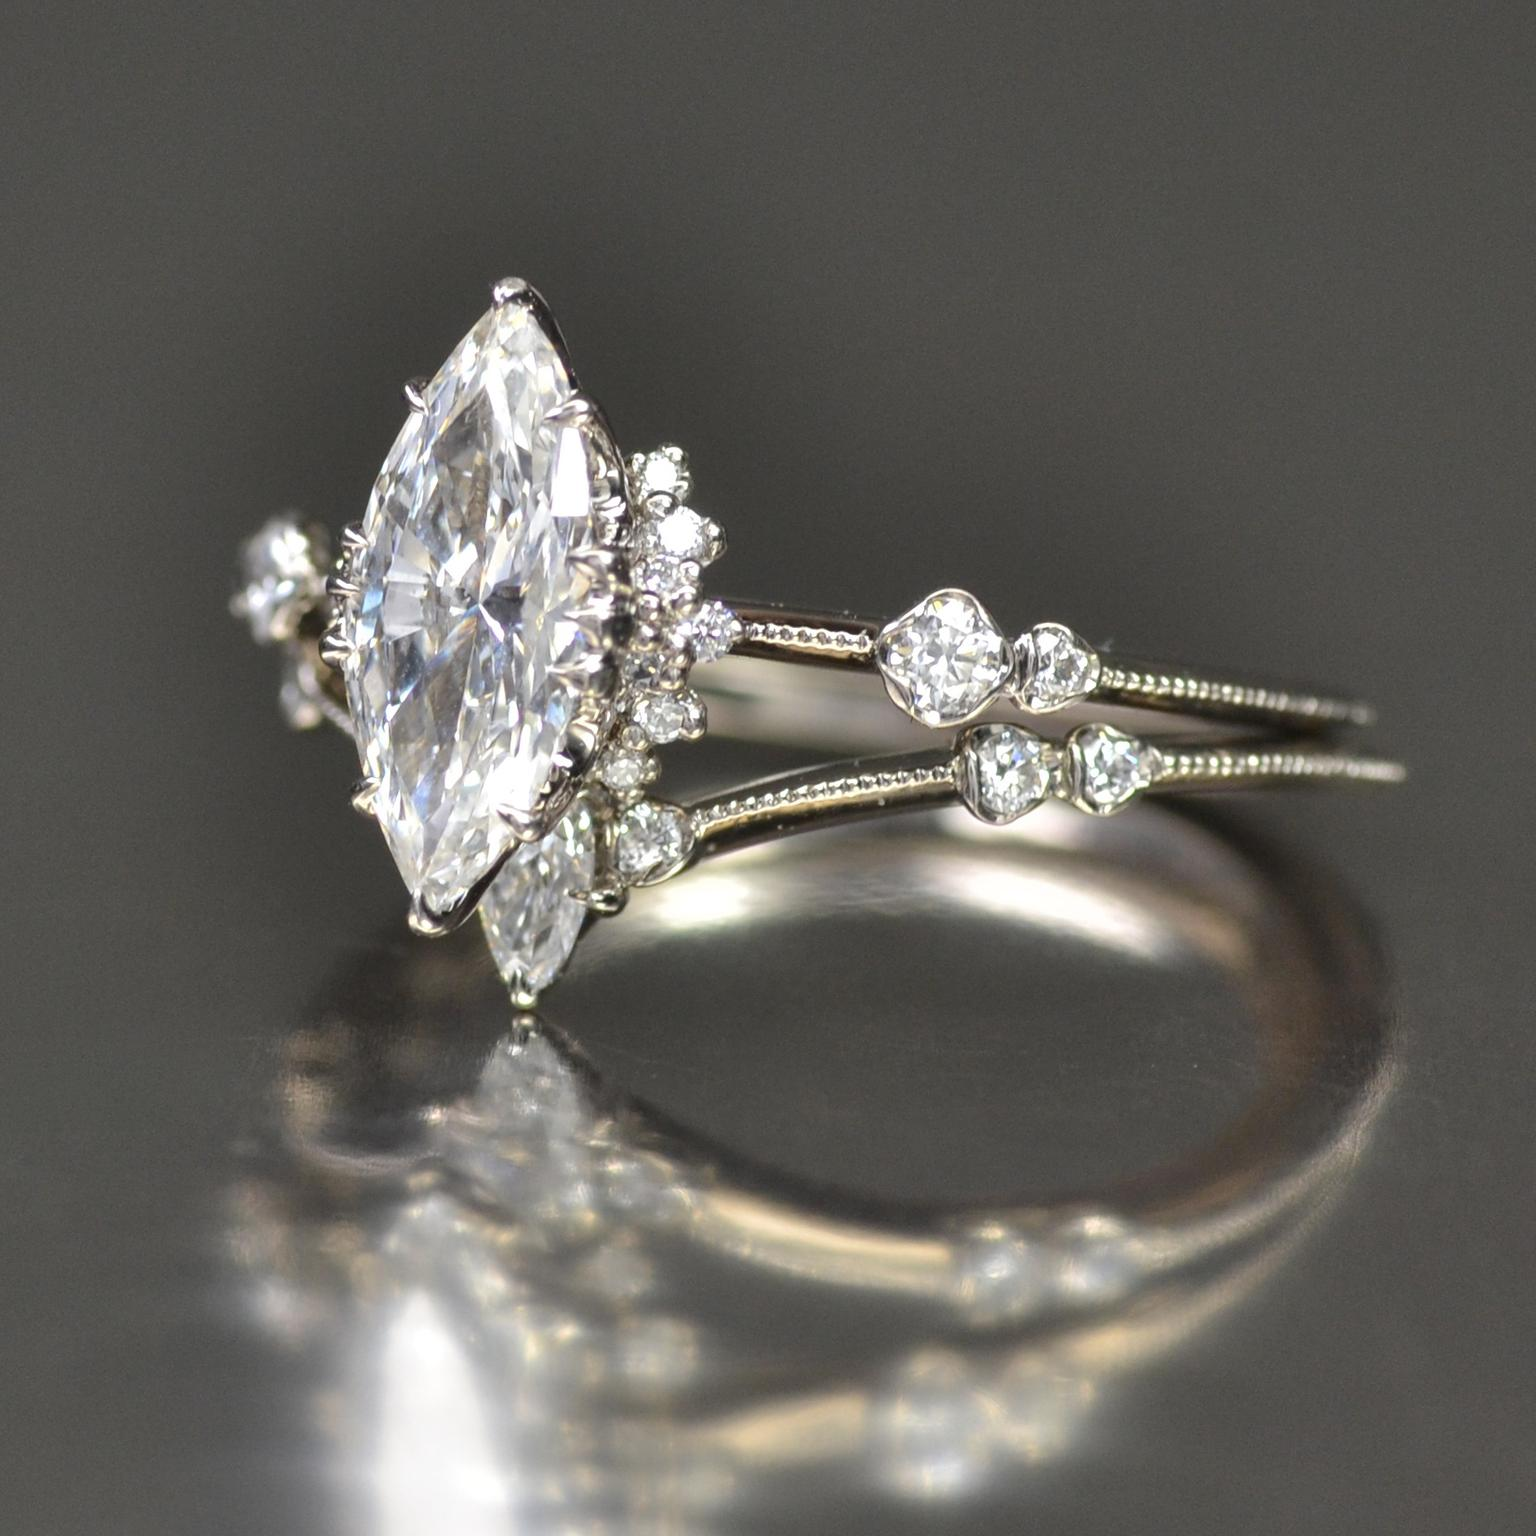 Kataoka Marquise Diamond Solitaire Ring Supreme